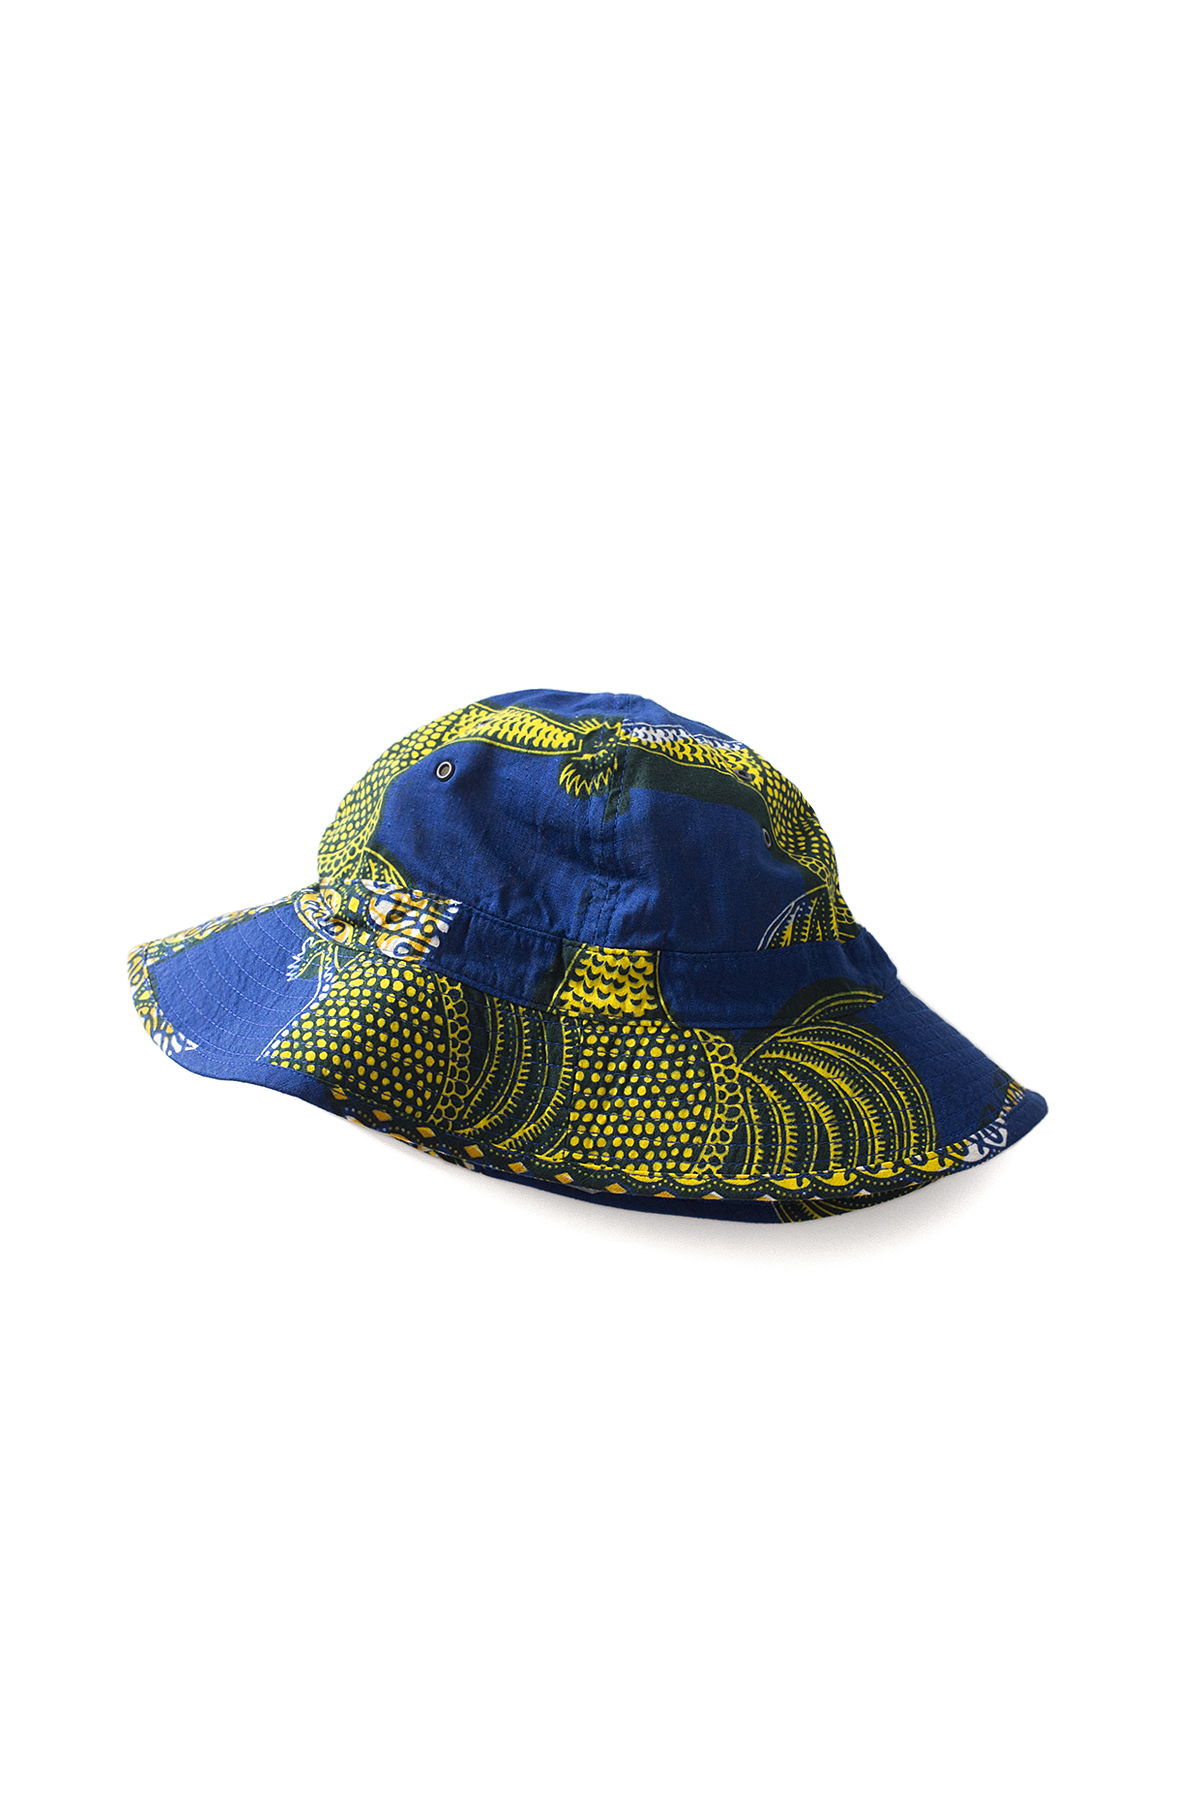 Infielder Design : Batik Military Hat (Blue x Yellow)